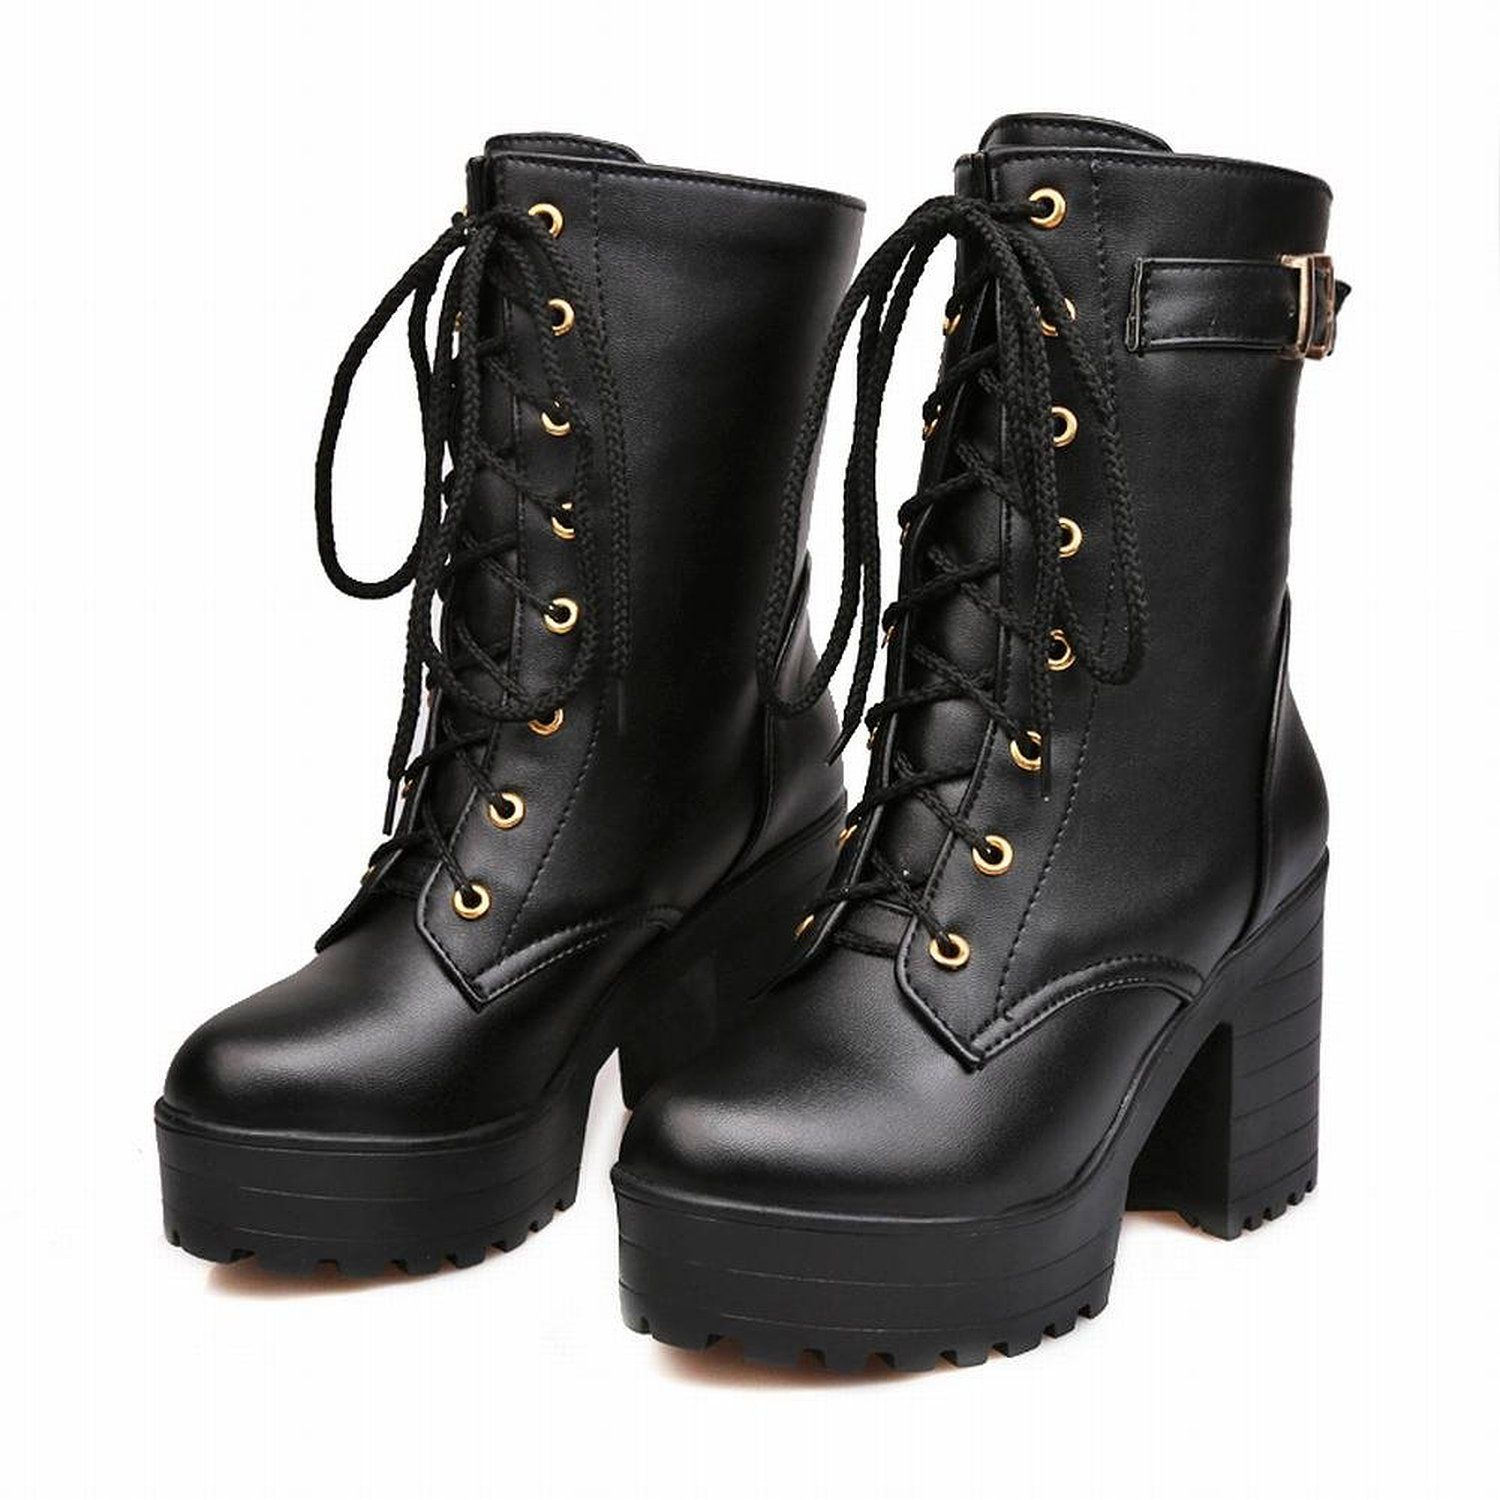 Women's Casual Mid Chunky Heels Platform Front Zipper Mid Calf Boots Riding Booties